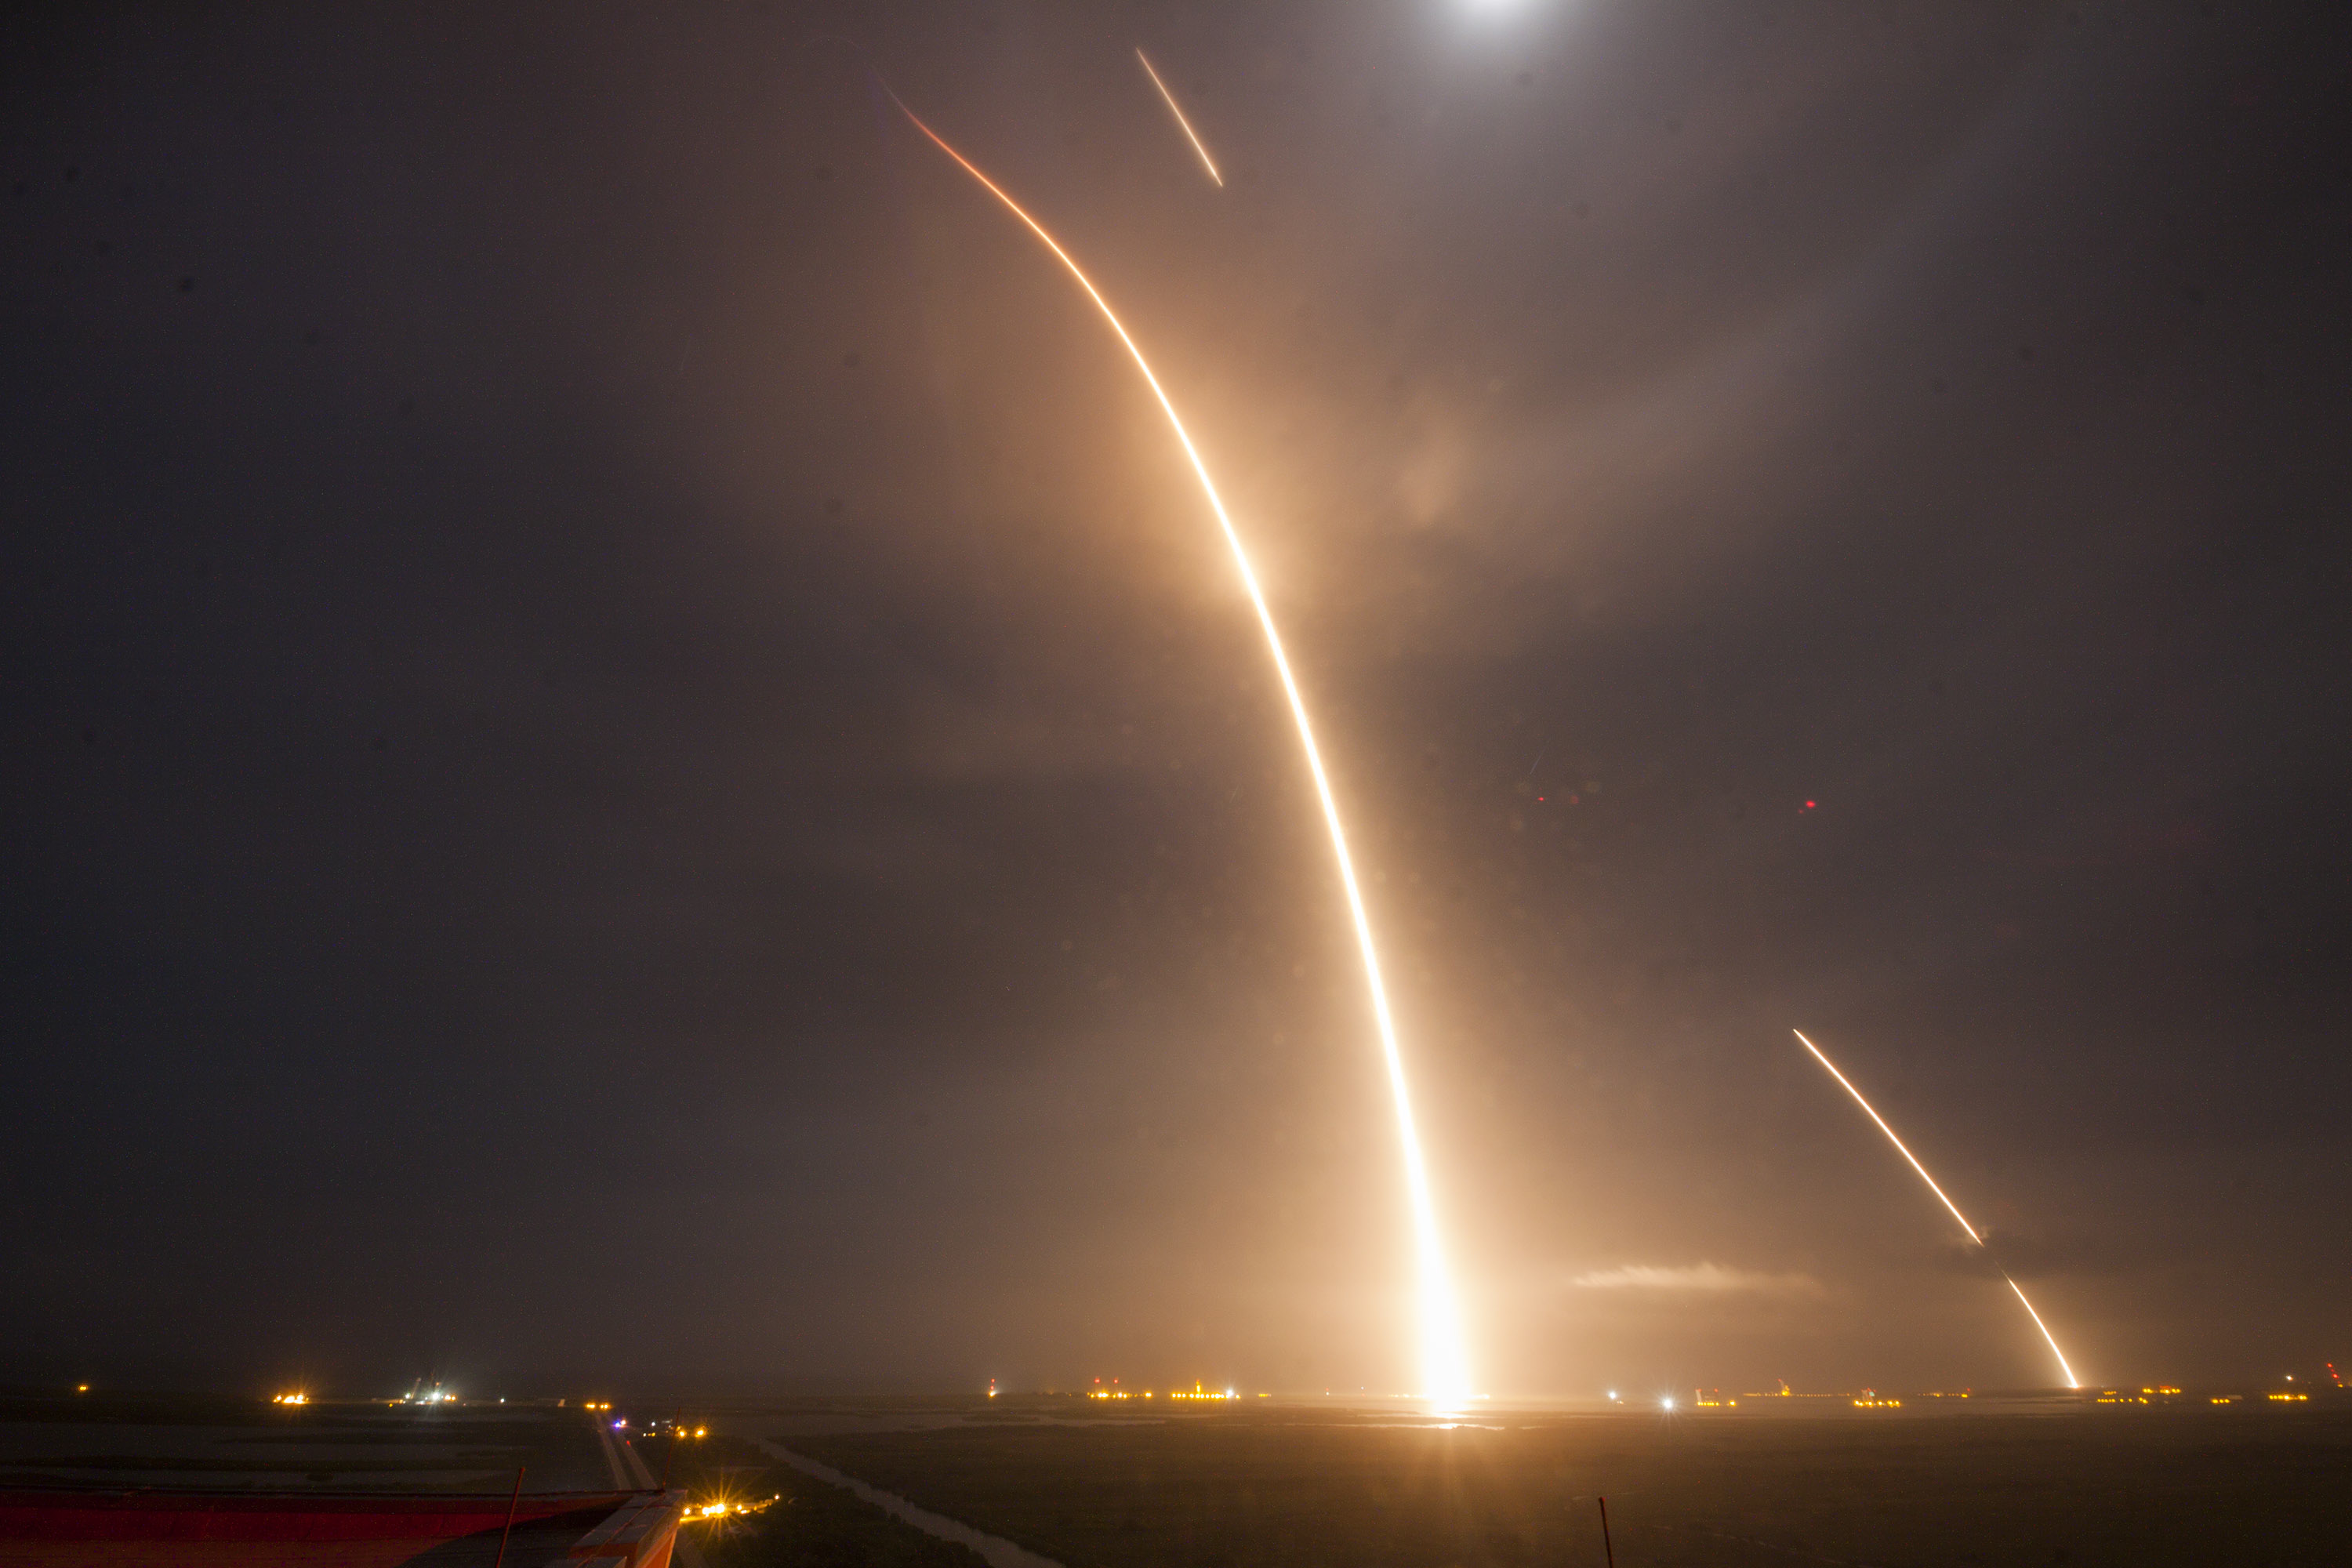 ORBCOMM-2 Launch, Re-entry, and Landing Burns, spacex